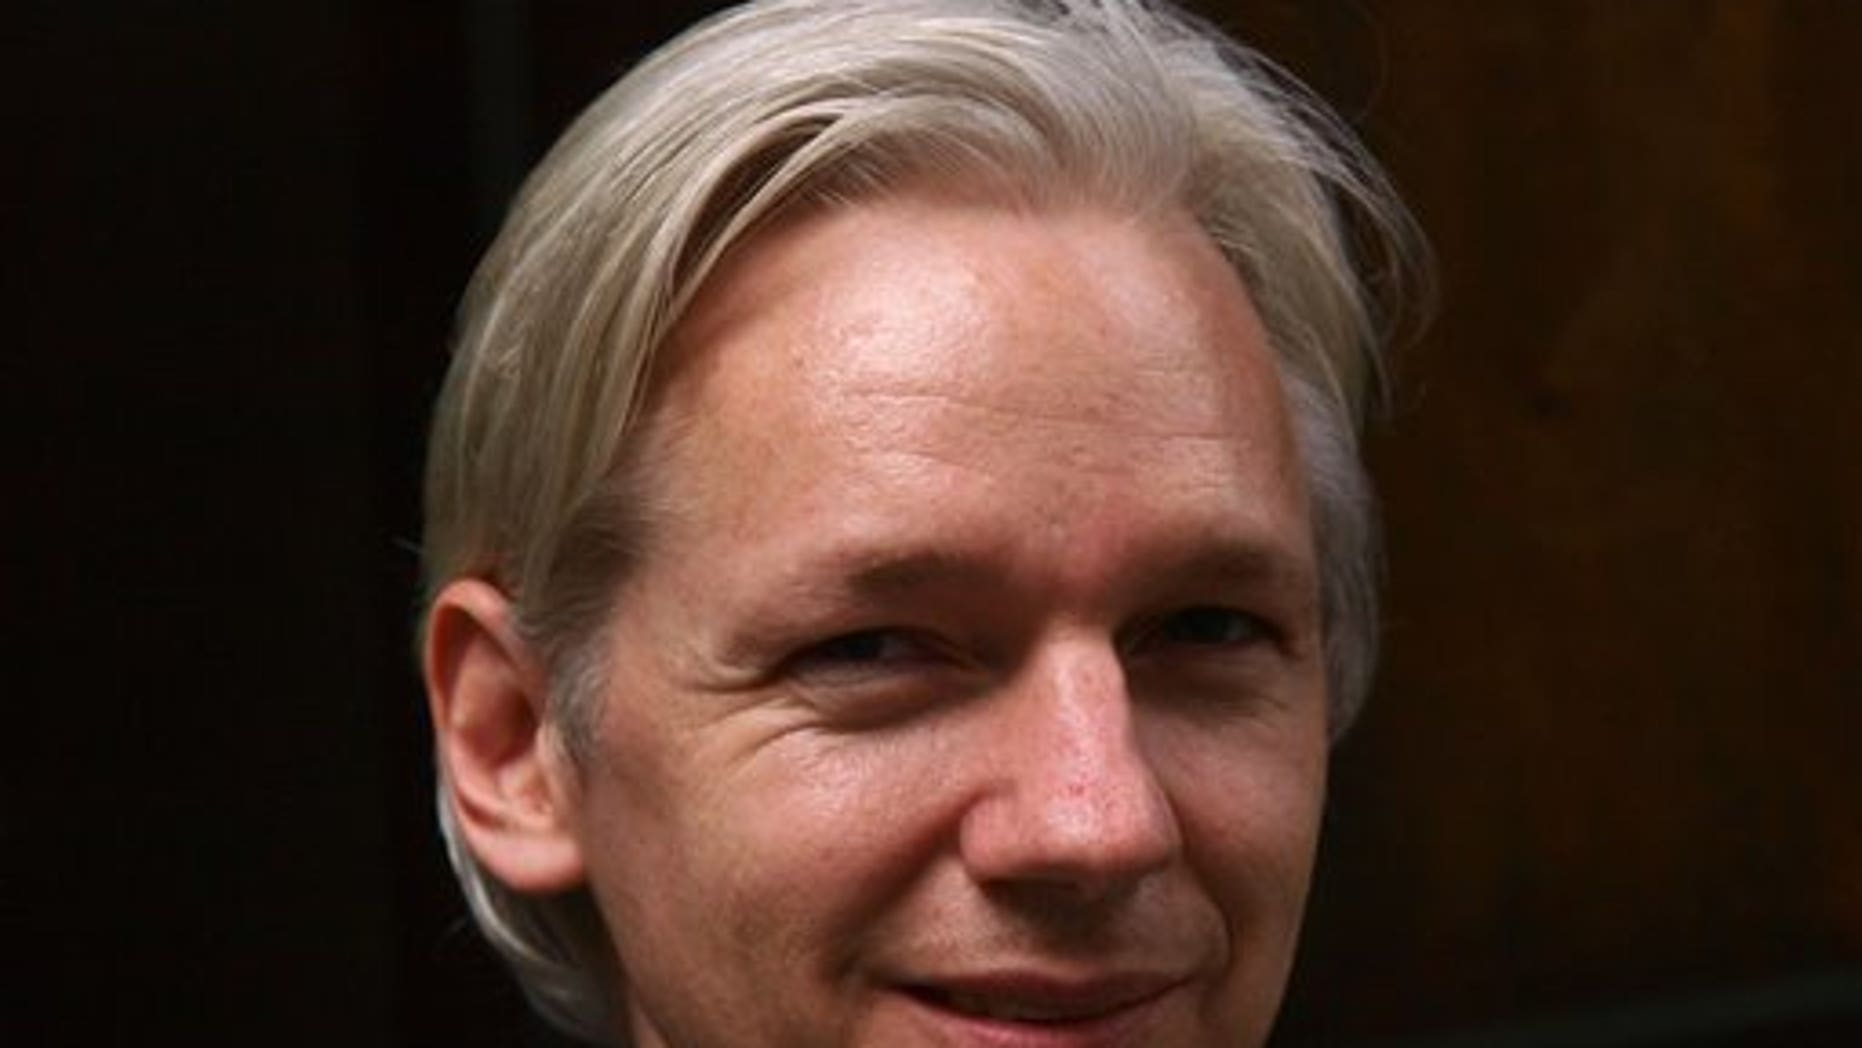 FILE: Founder and editor of the WikiLeaks website, Julian Assange, speaks to members of the media during a debate event held in London.